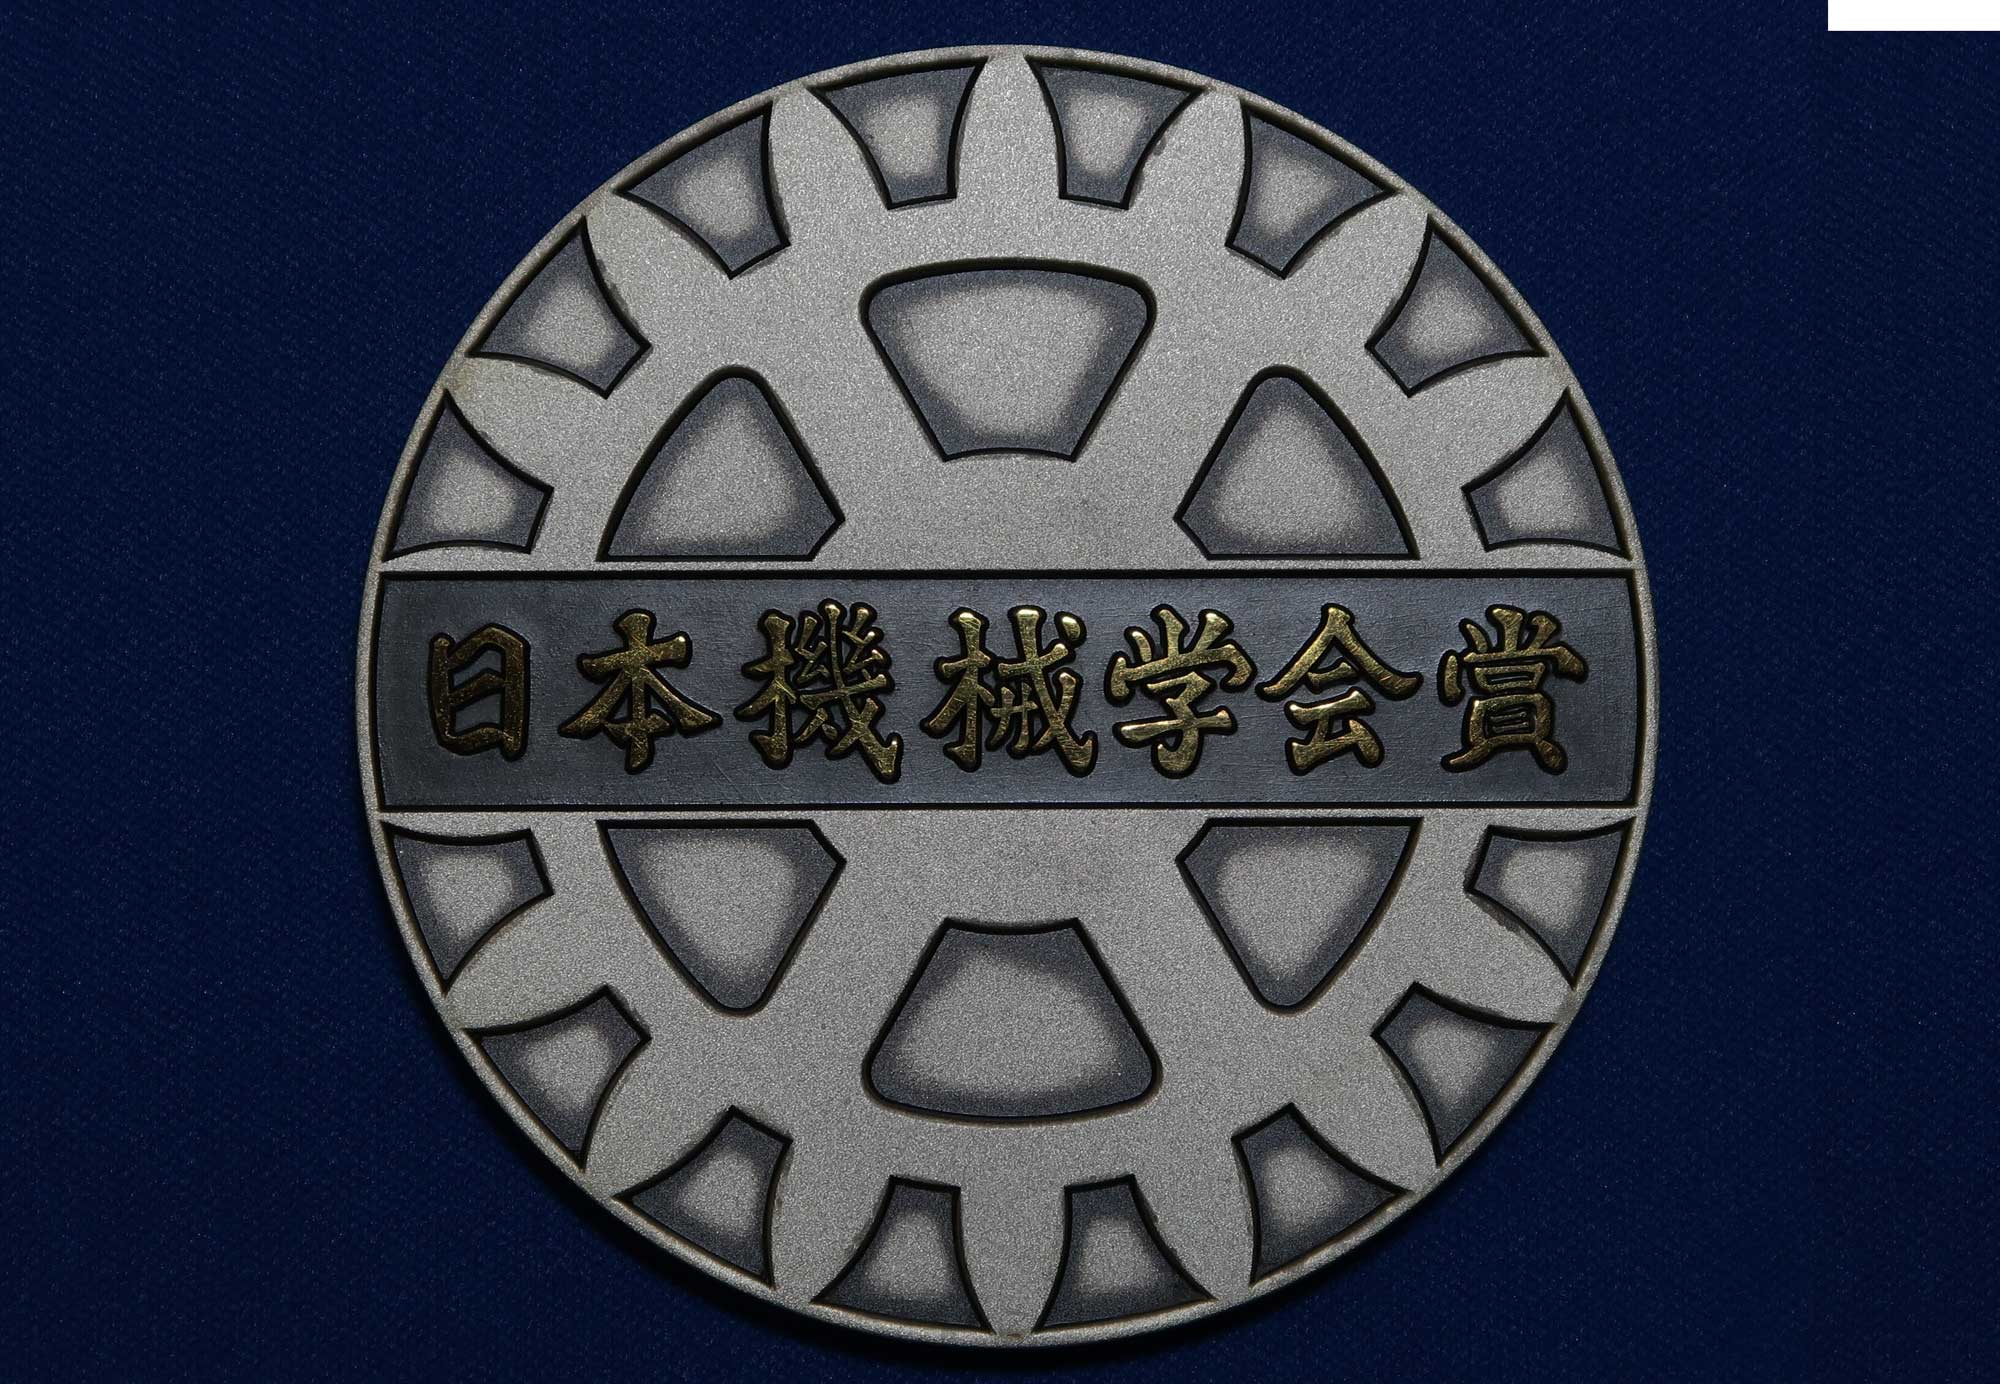 Our Helium-Sealed Technology Awarded Prestigious JSME Medal and on Display in Tokyo Museum